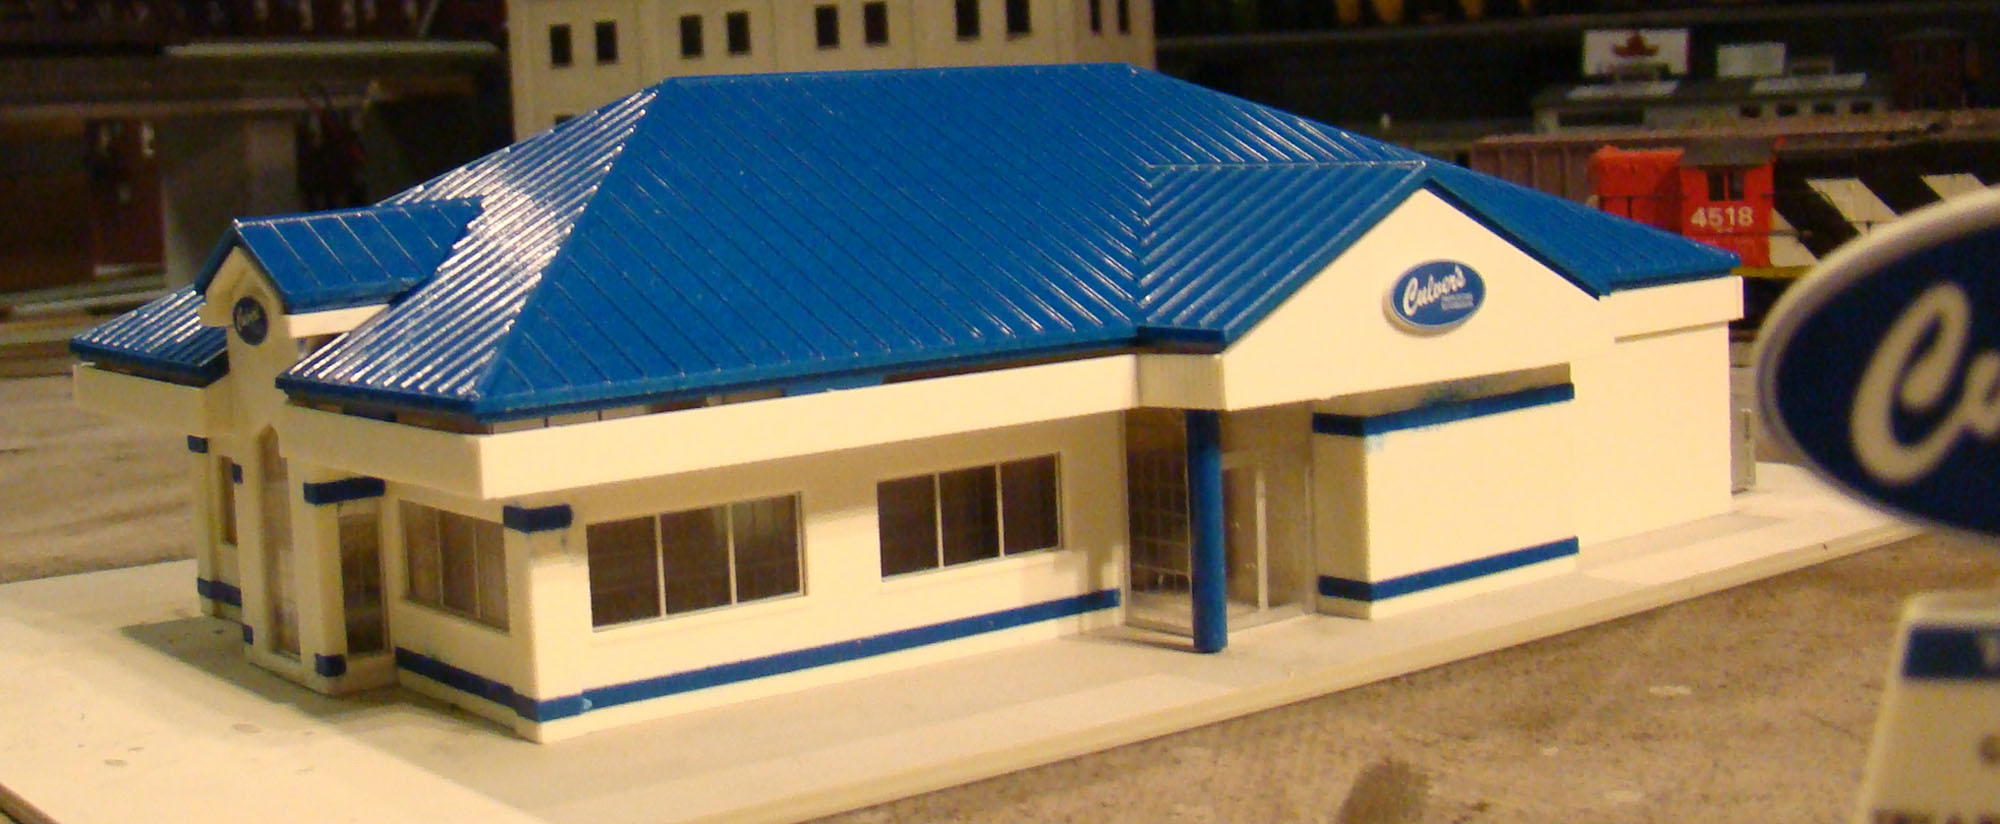 walthers culvers restaurant